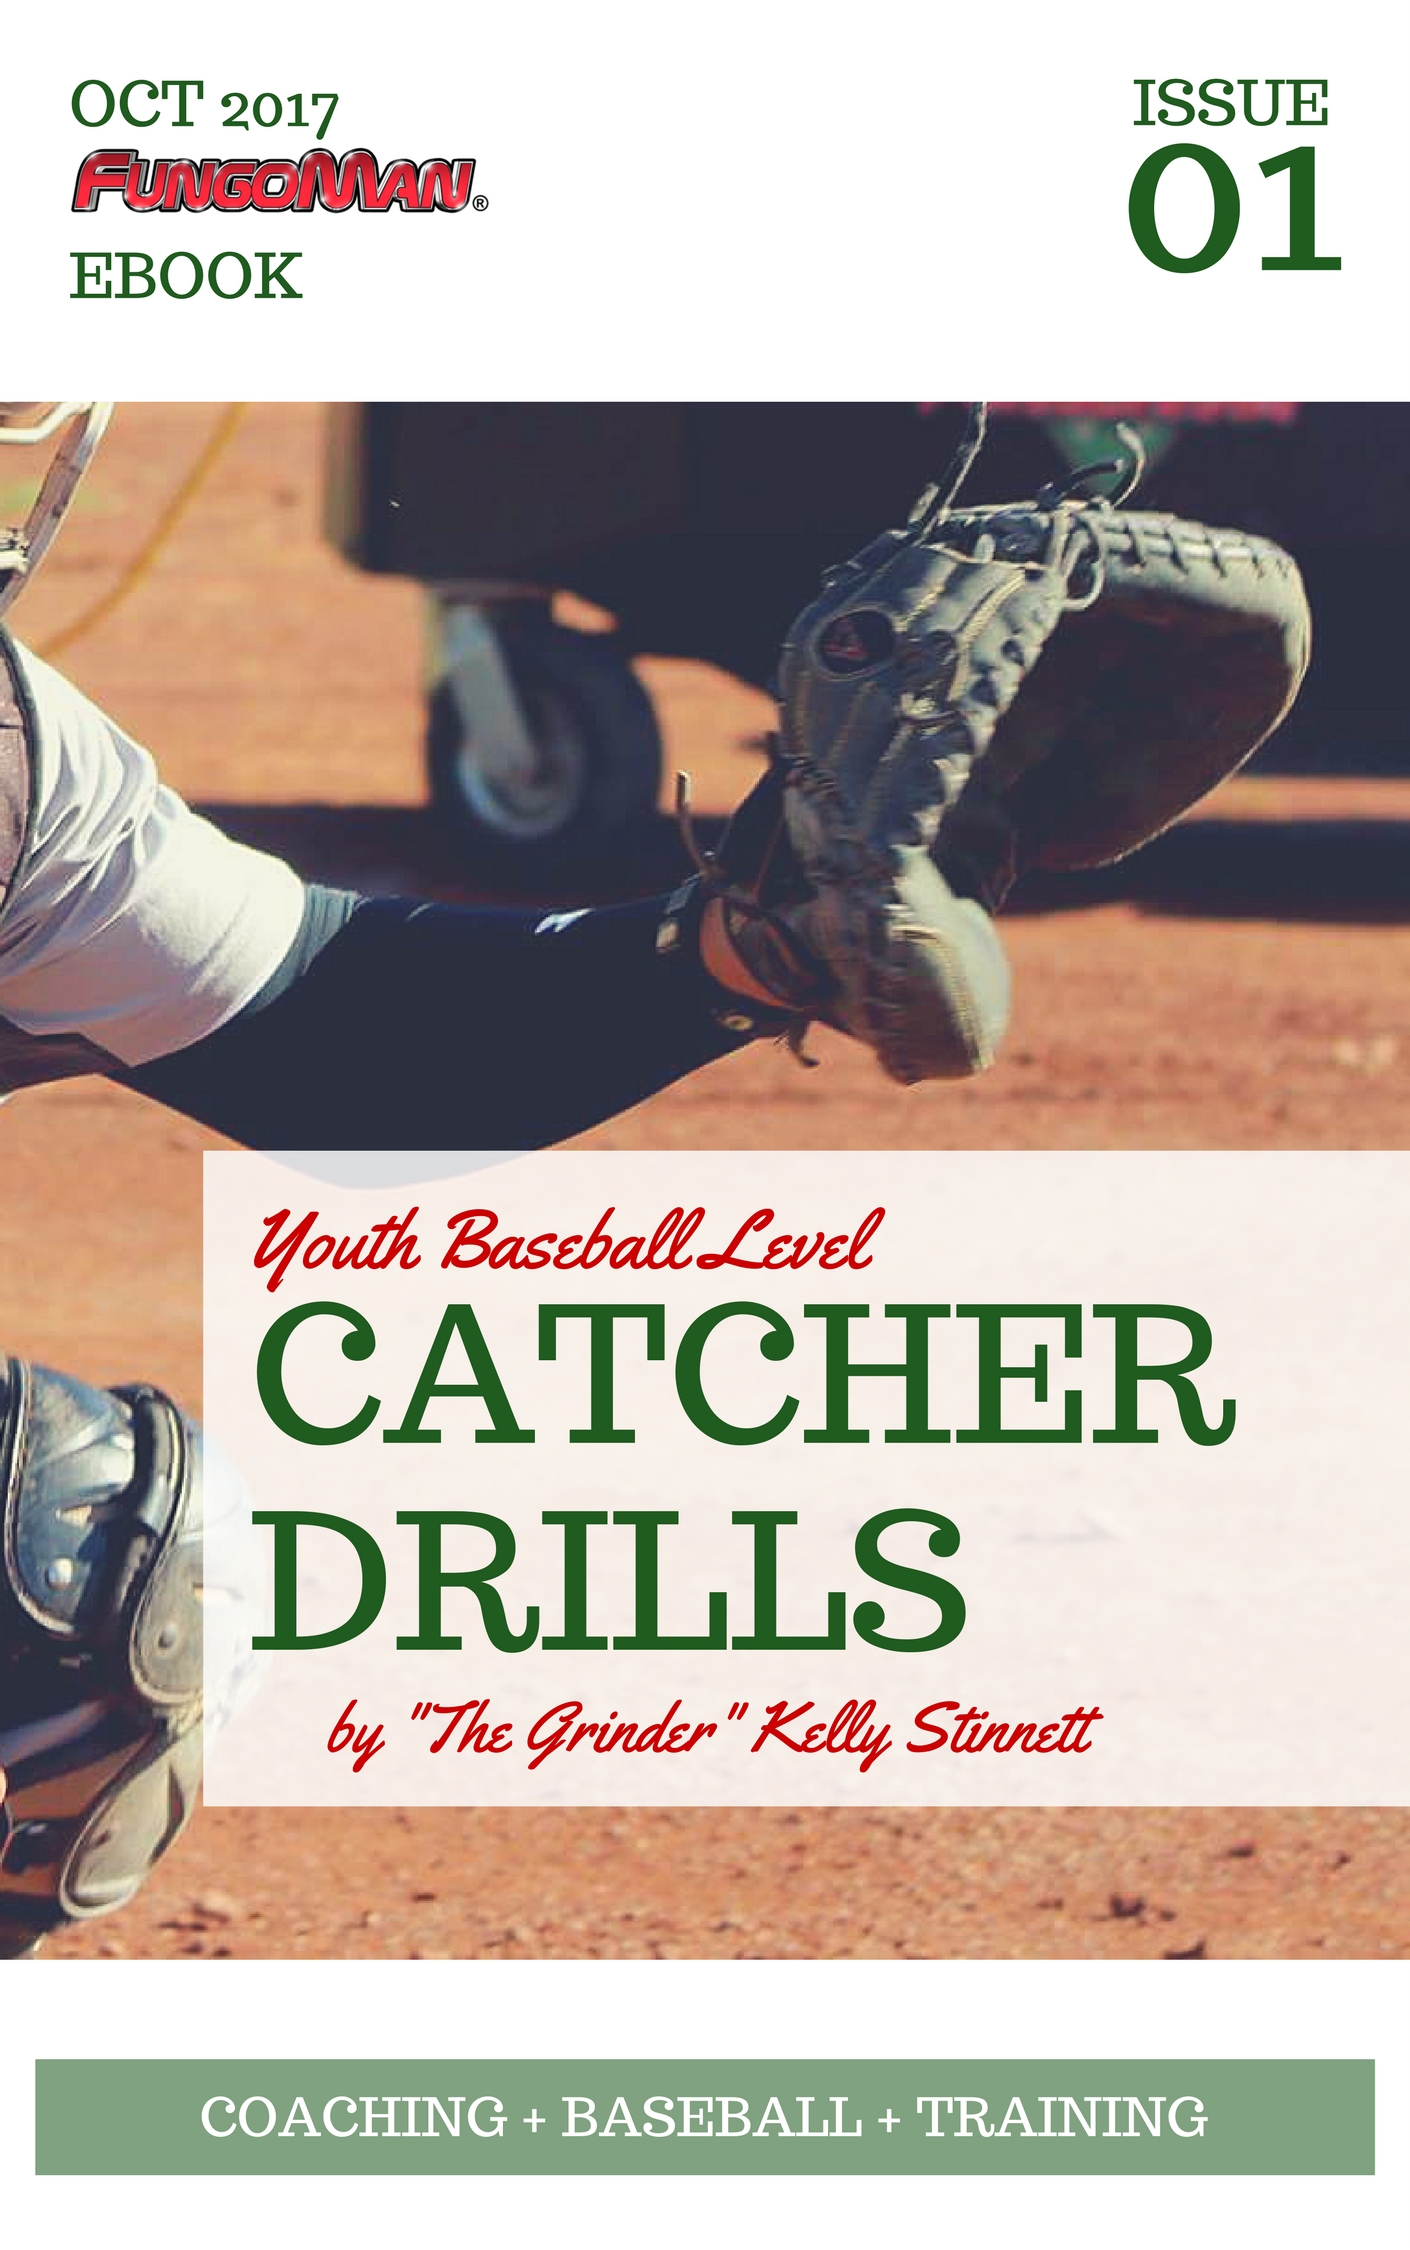 Catching Drills with Kelly Stinnett eBook Cover.png